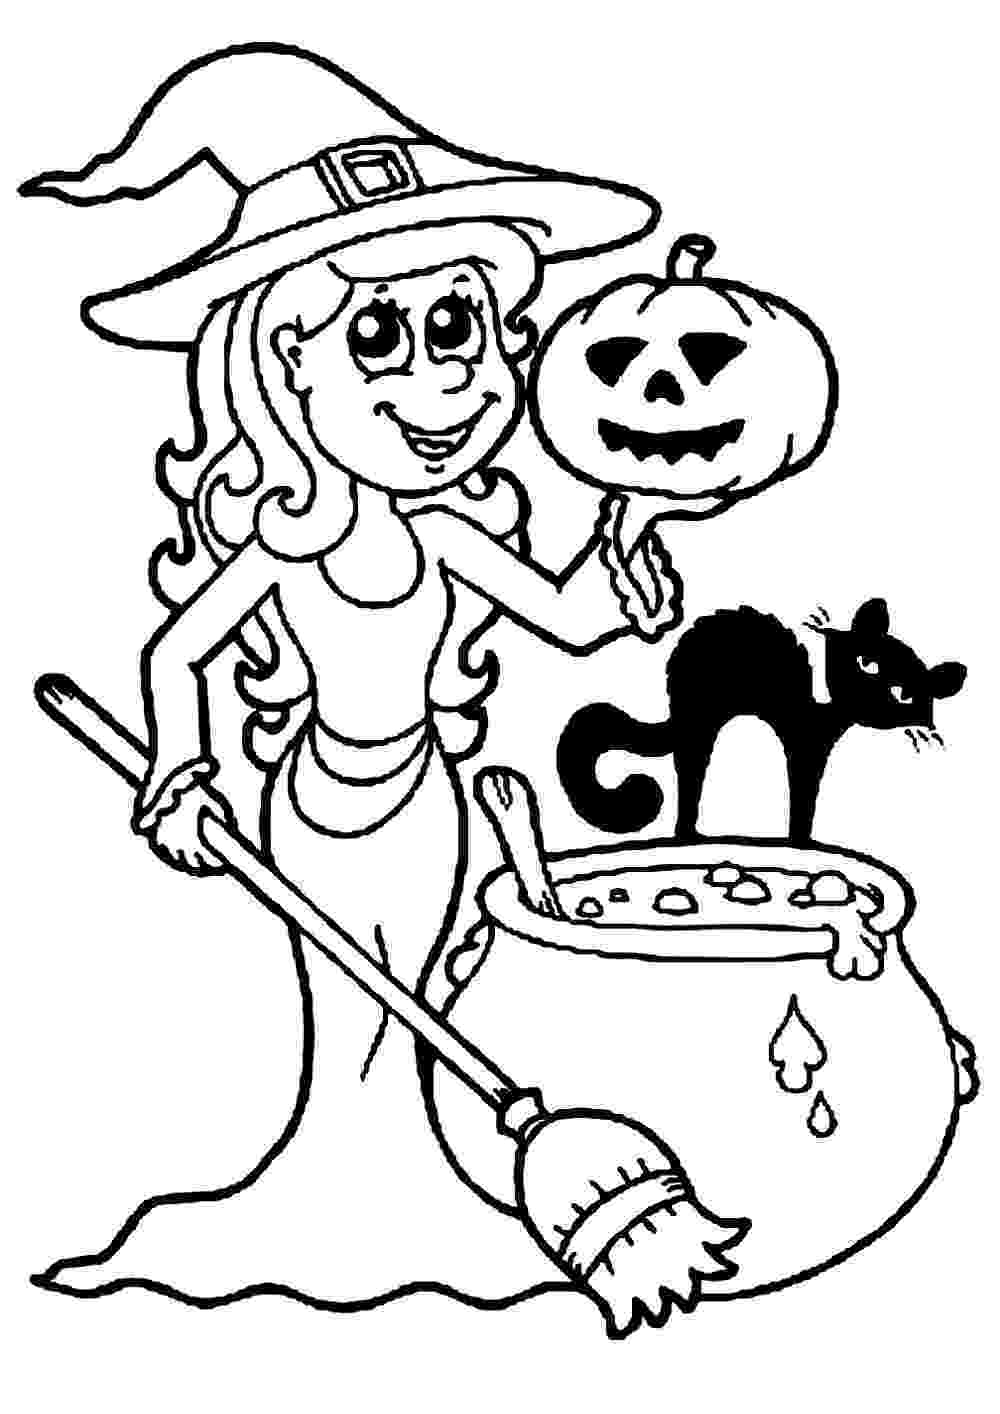 coloring pages for preschoolers halloween letter h is for halloween coloring page free printable pages halloween preschoolers coloring for